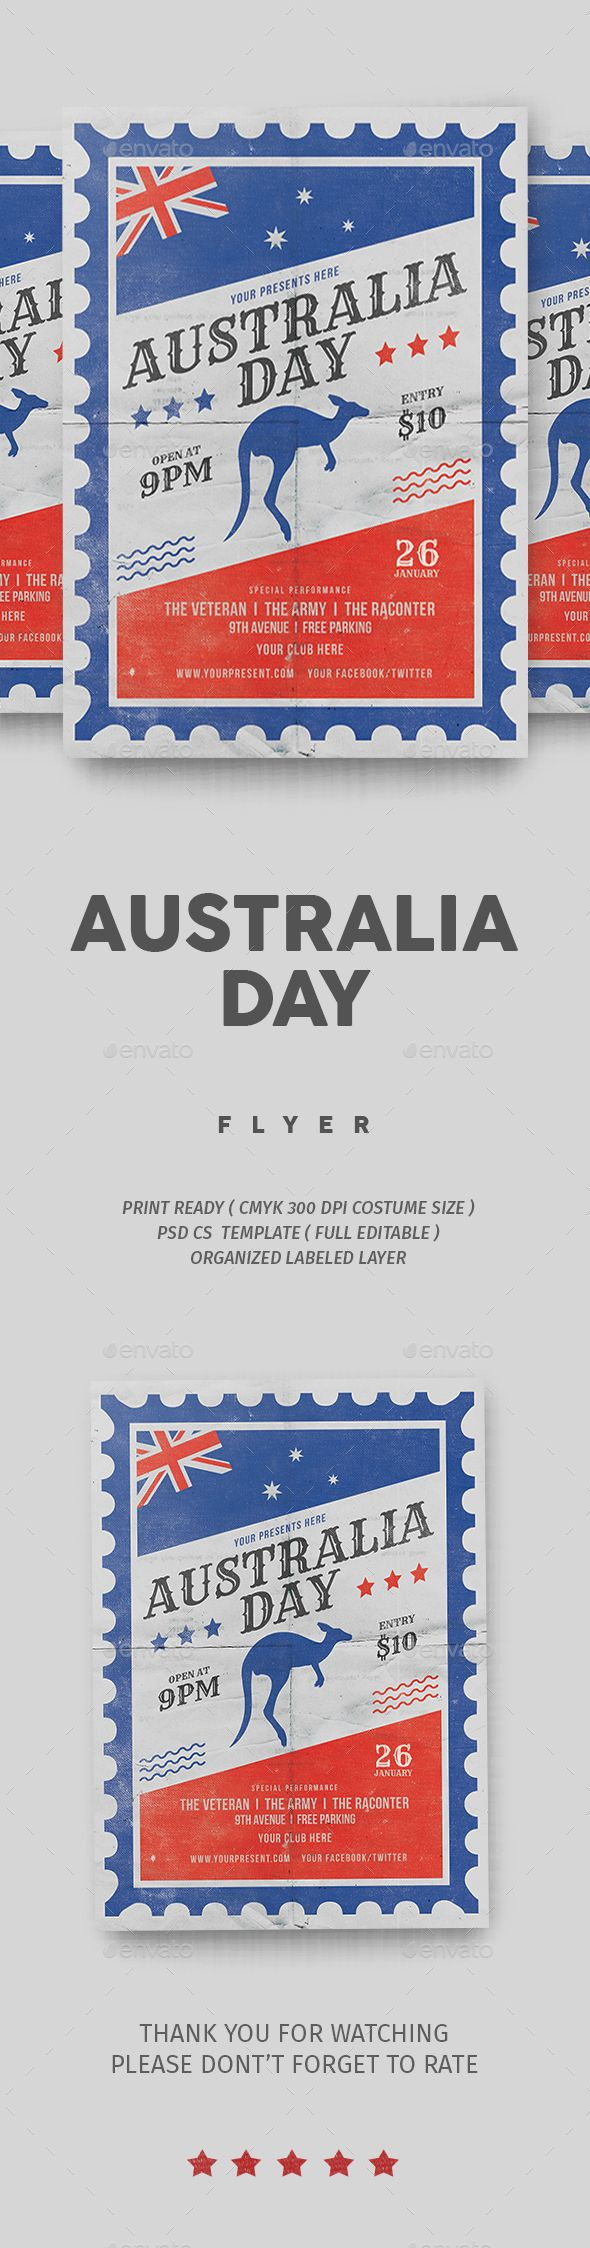 Australia Day Flyer Vol 2 — Photoshop PSD #festival #australia party • Download ➝ https://graphicriver.net/item/australia-day-flyer-vol-2/19289304?ref=pxcr